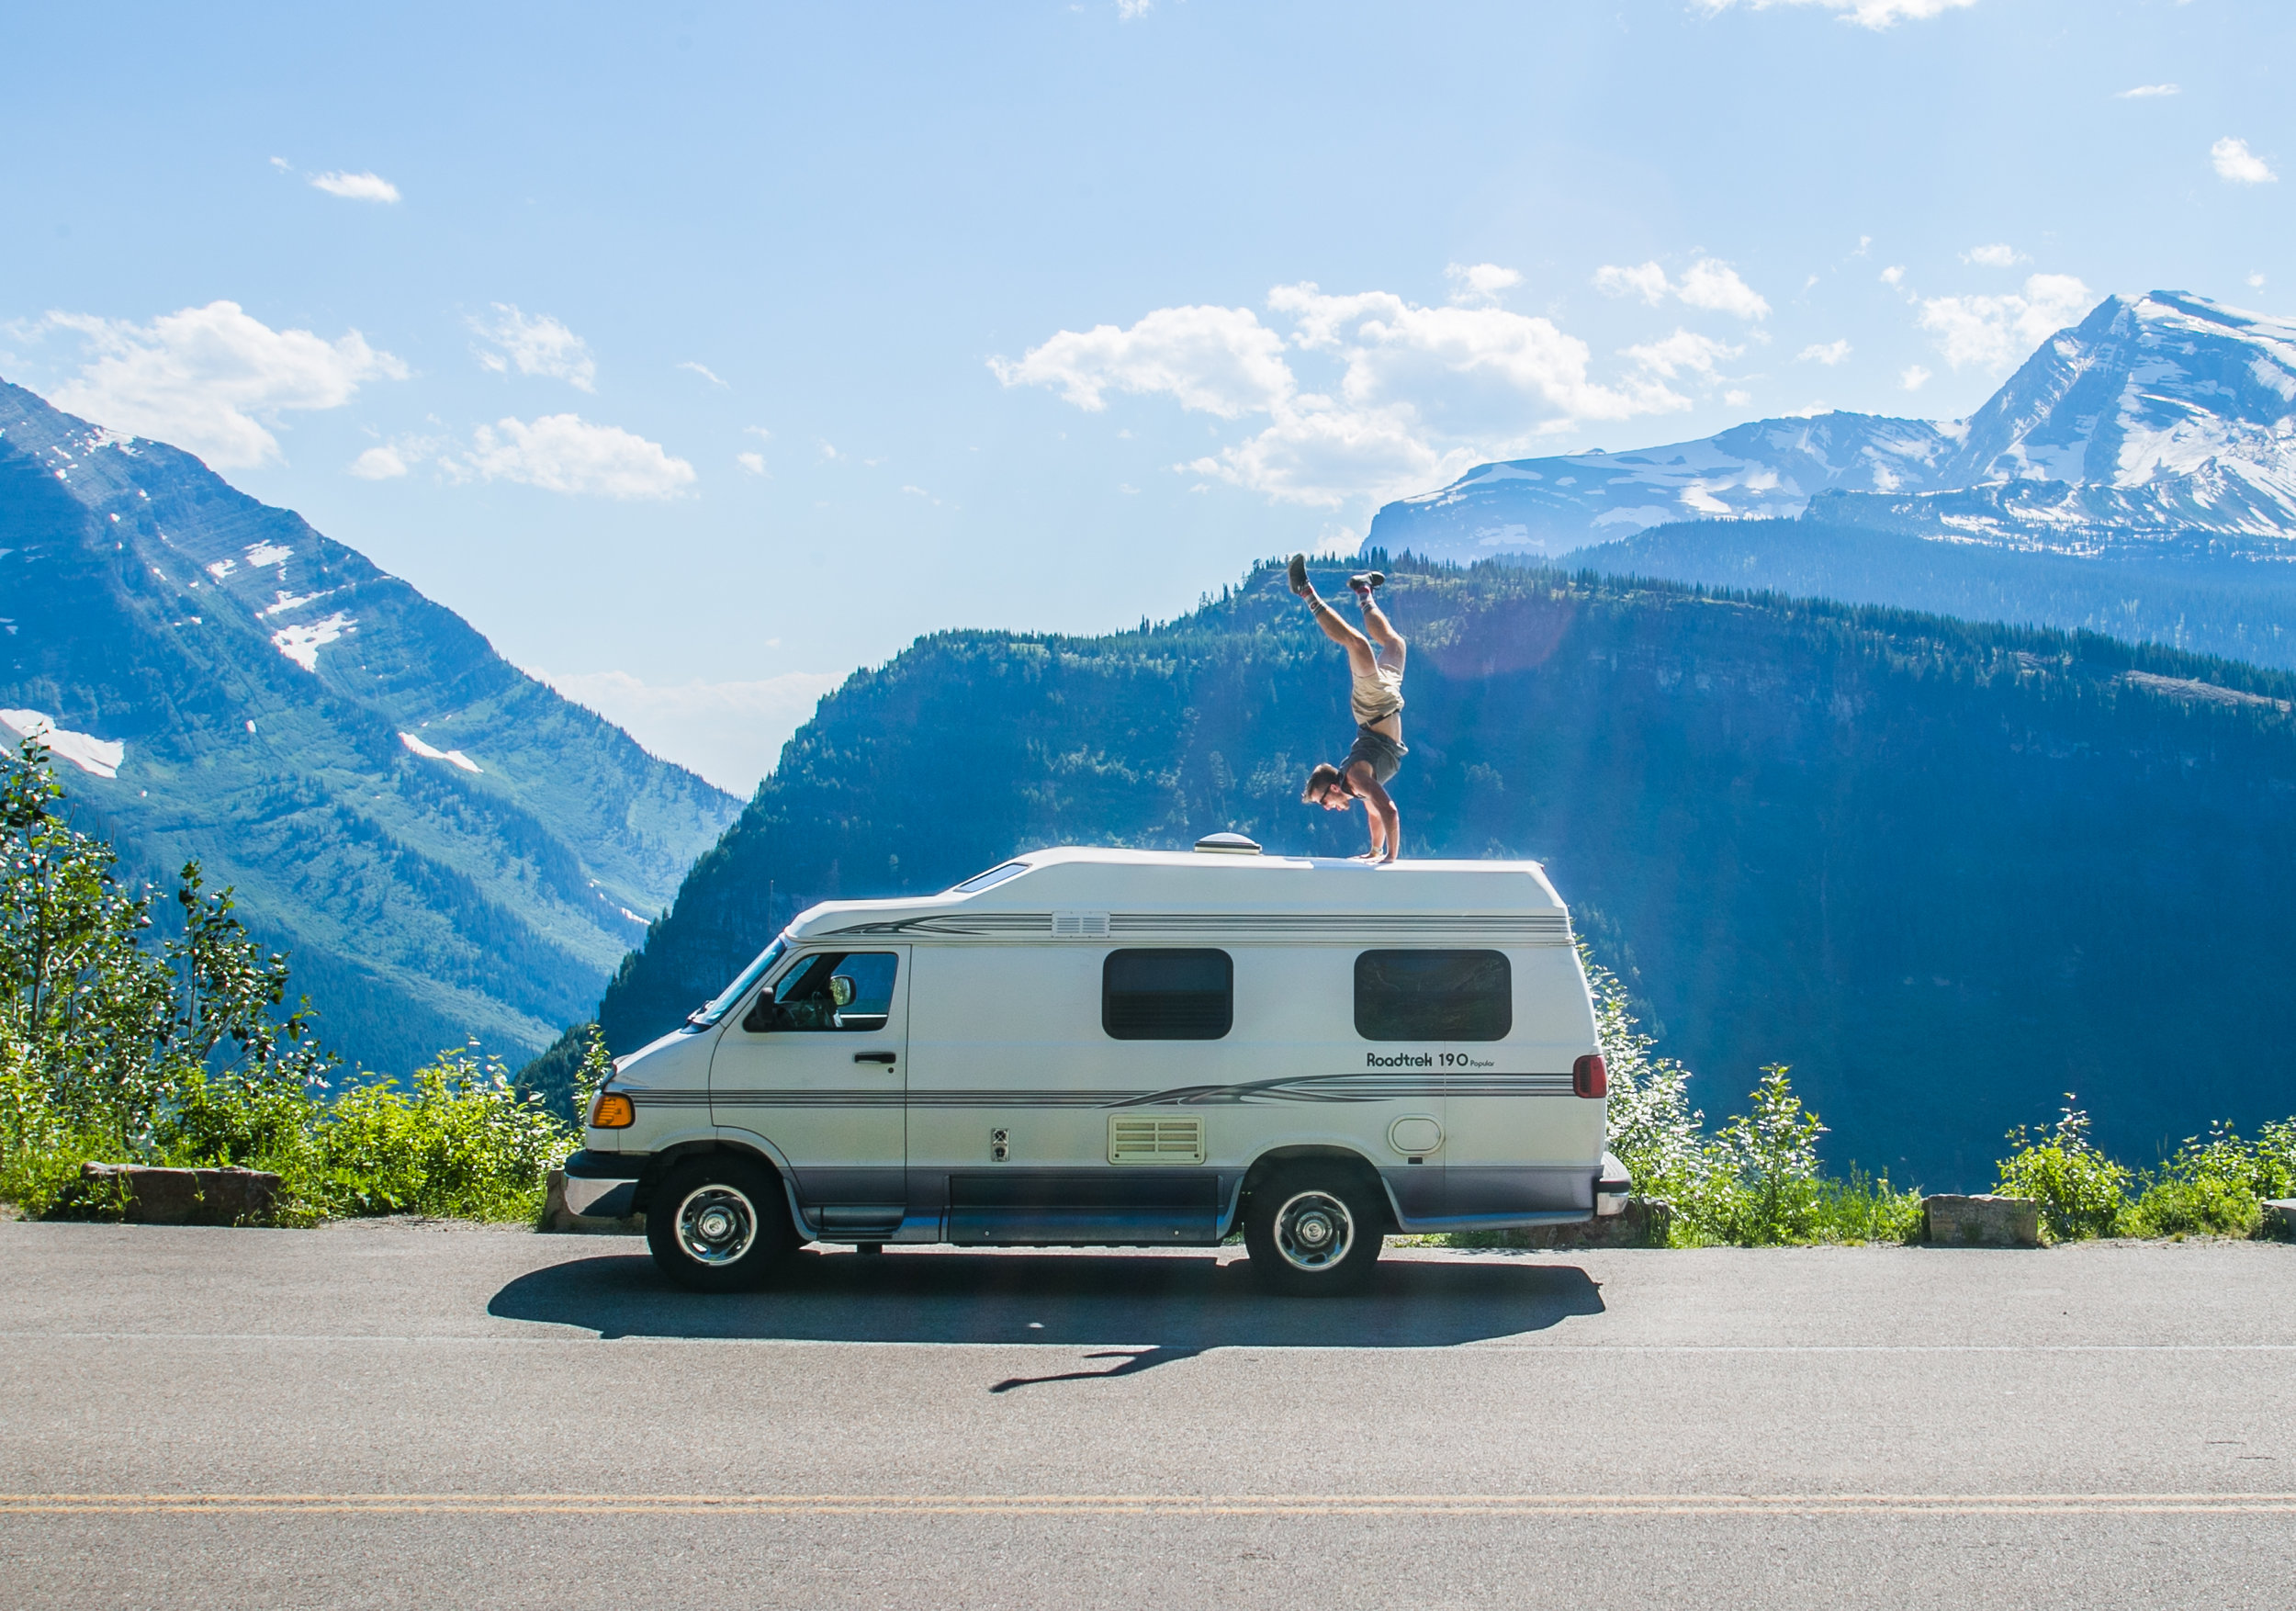 Image by: Garett Brower - Roadside pull-off - Grand Teton National Park, WY